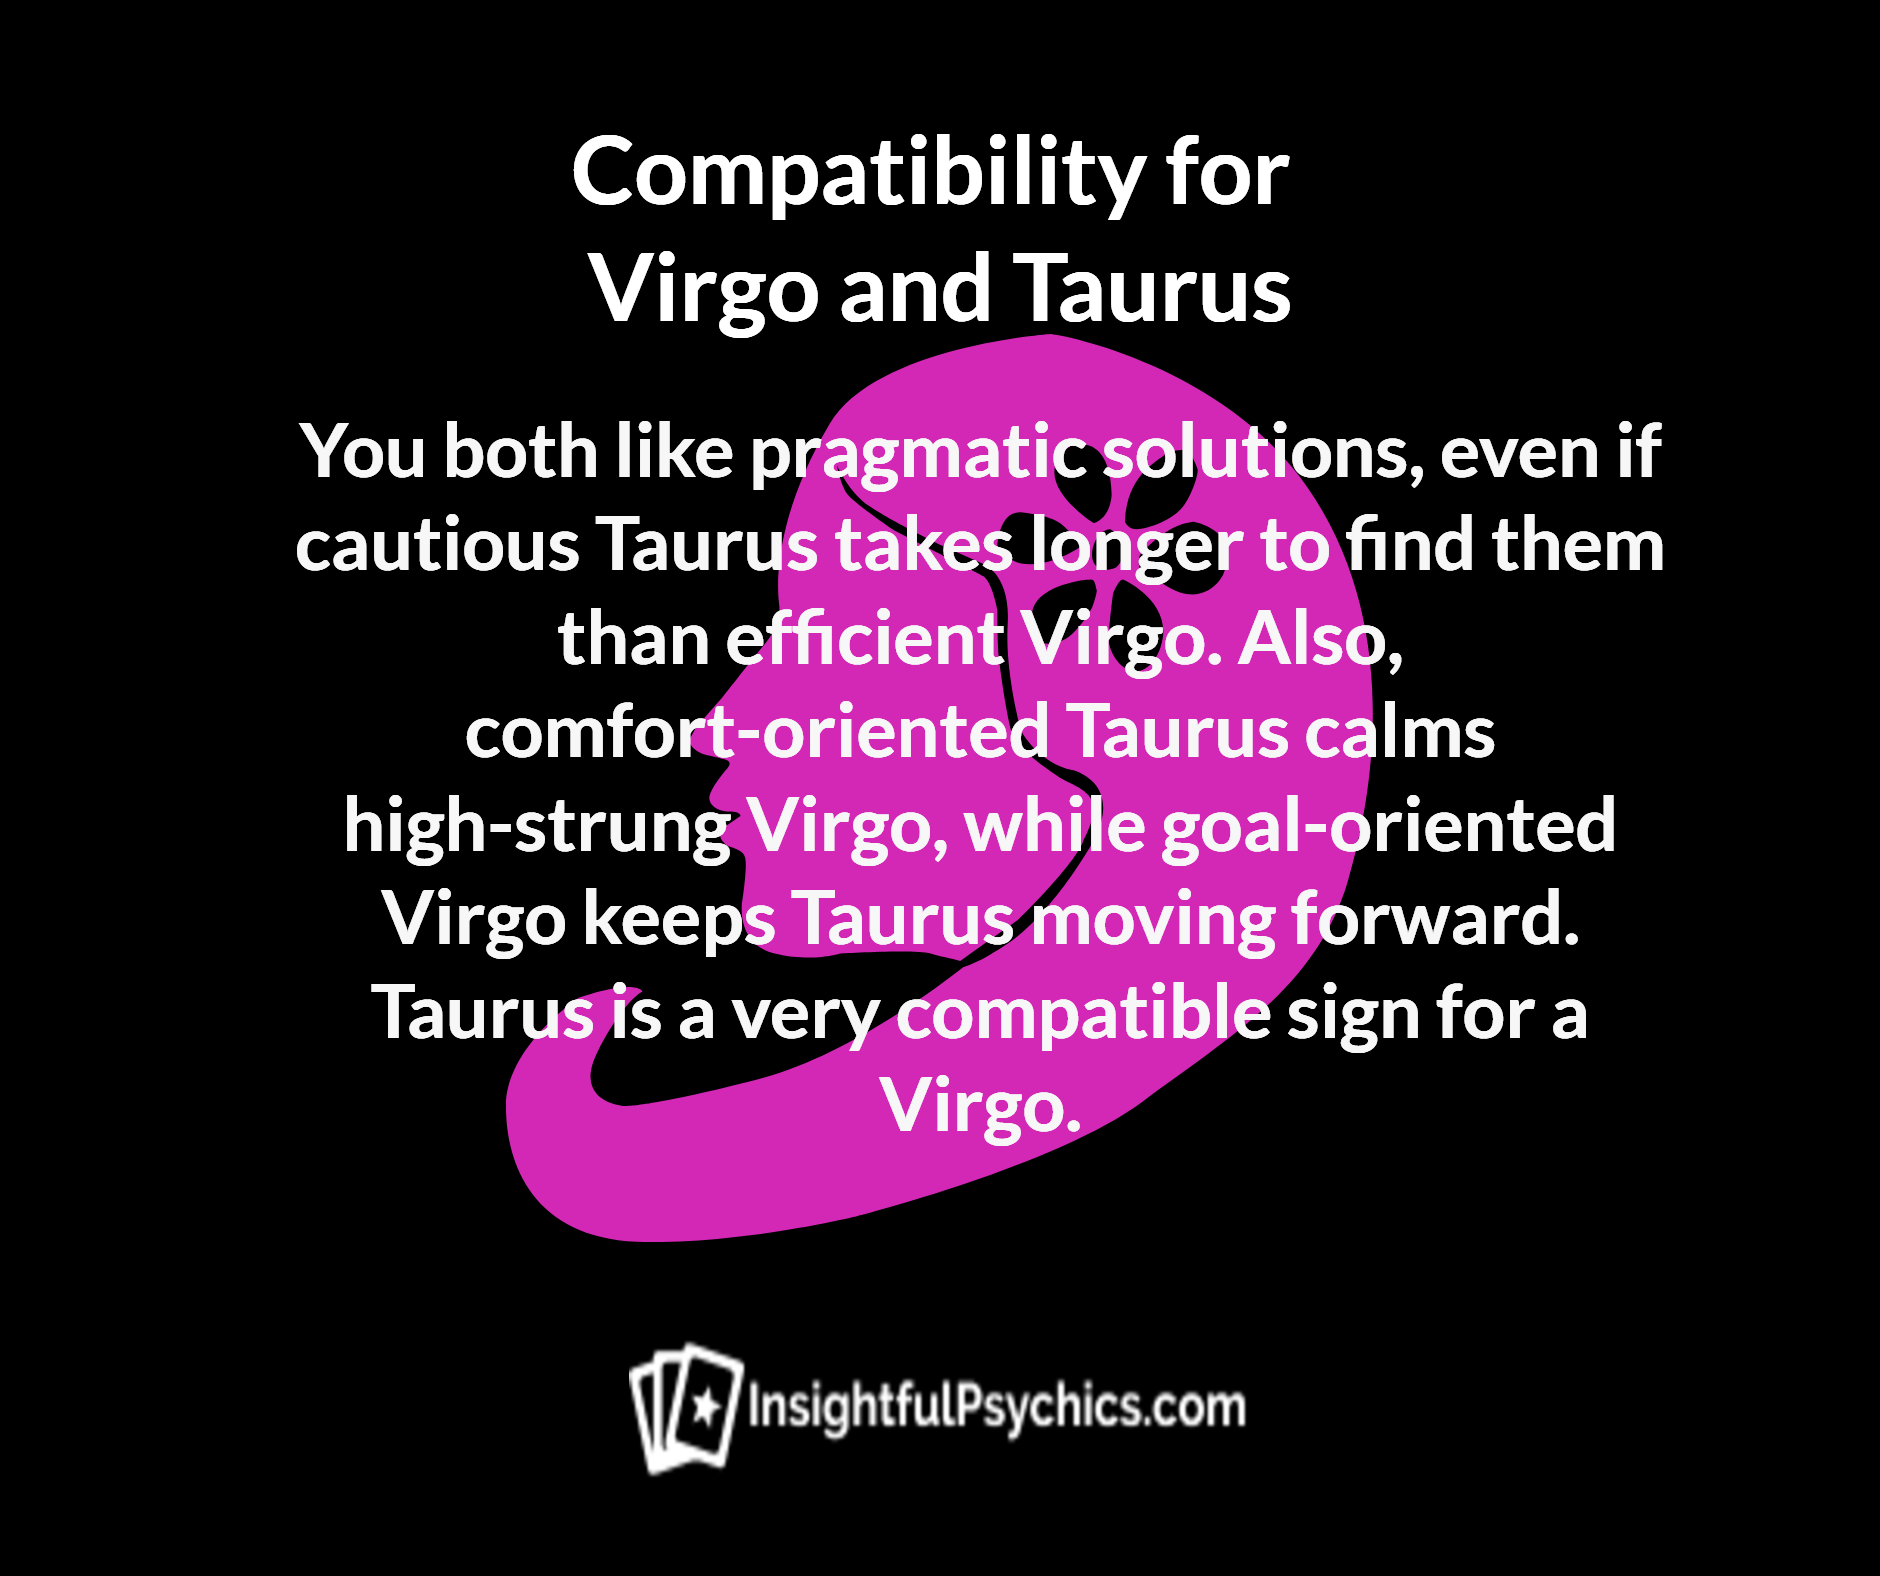 Compatibility virgo and taurus